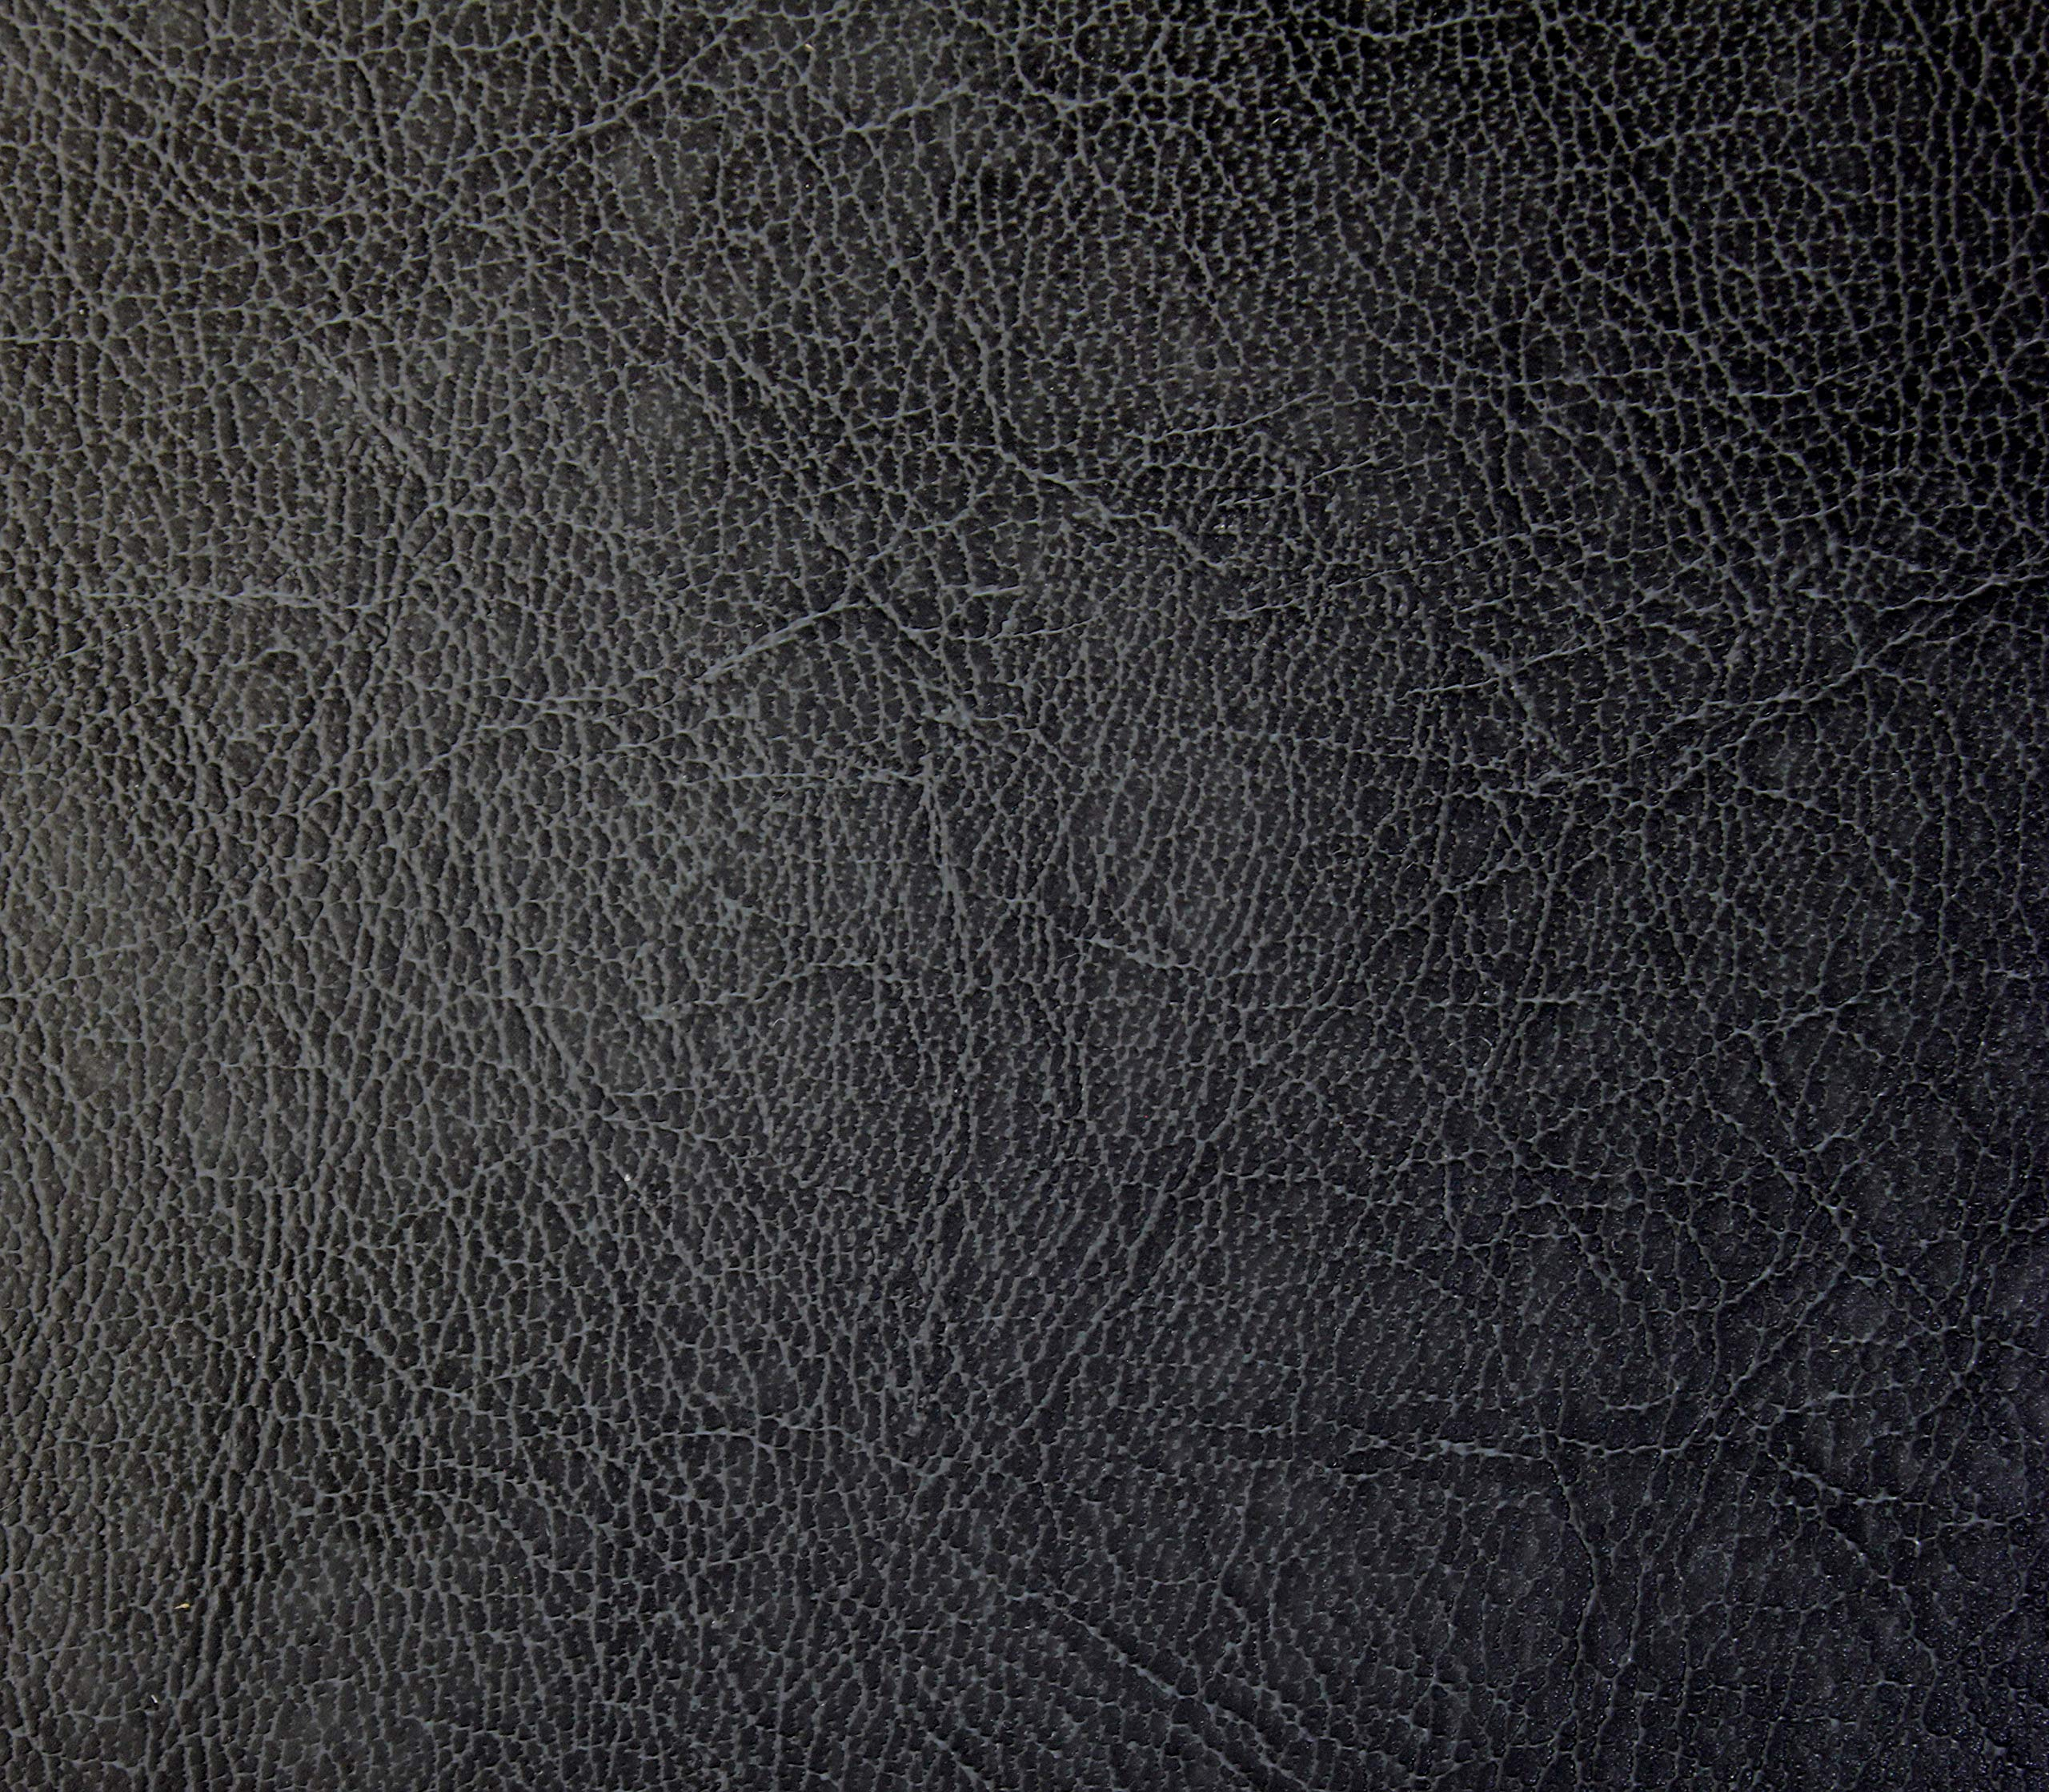 VViViD Bycast65 Black Matte Top-Grain Faux Leather Marine Vinyl Fabric (10ft x 54'') by VViViD (Image #2)